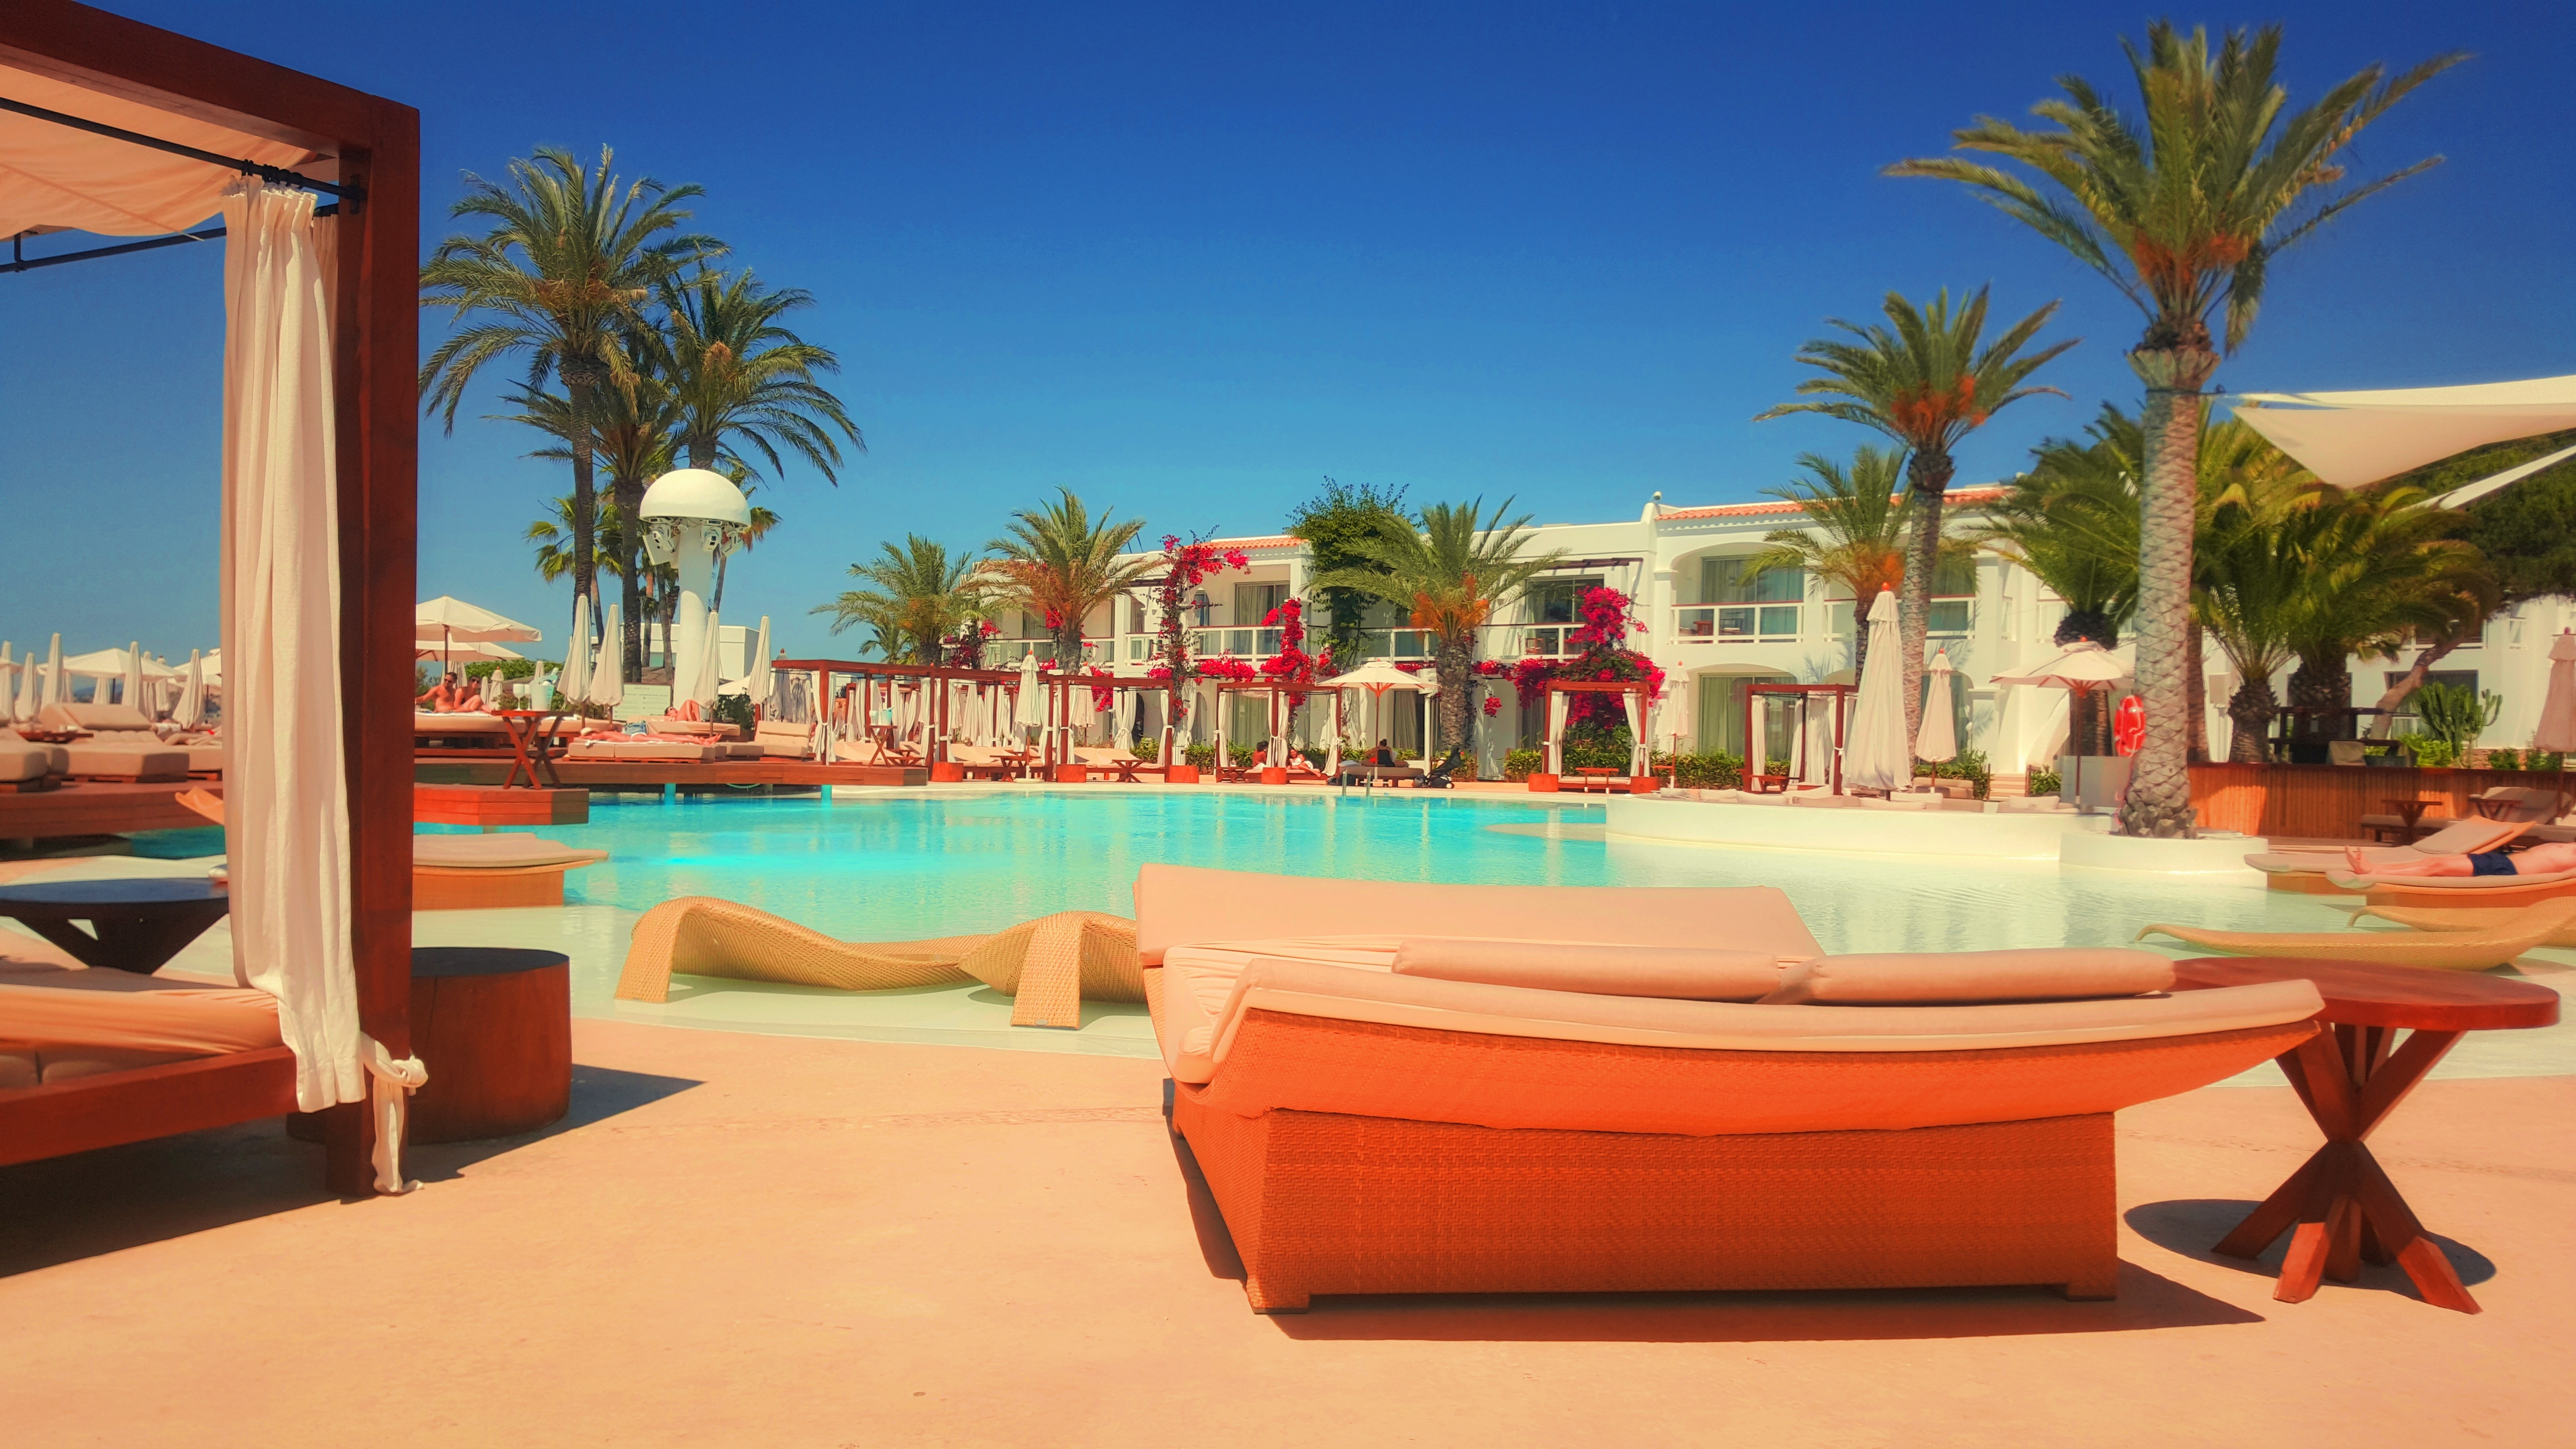 resort_hotel_pool_relaxation_luxury_palm_trees_110912_5312x2988